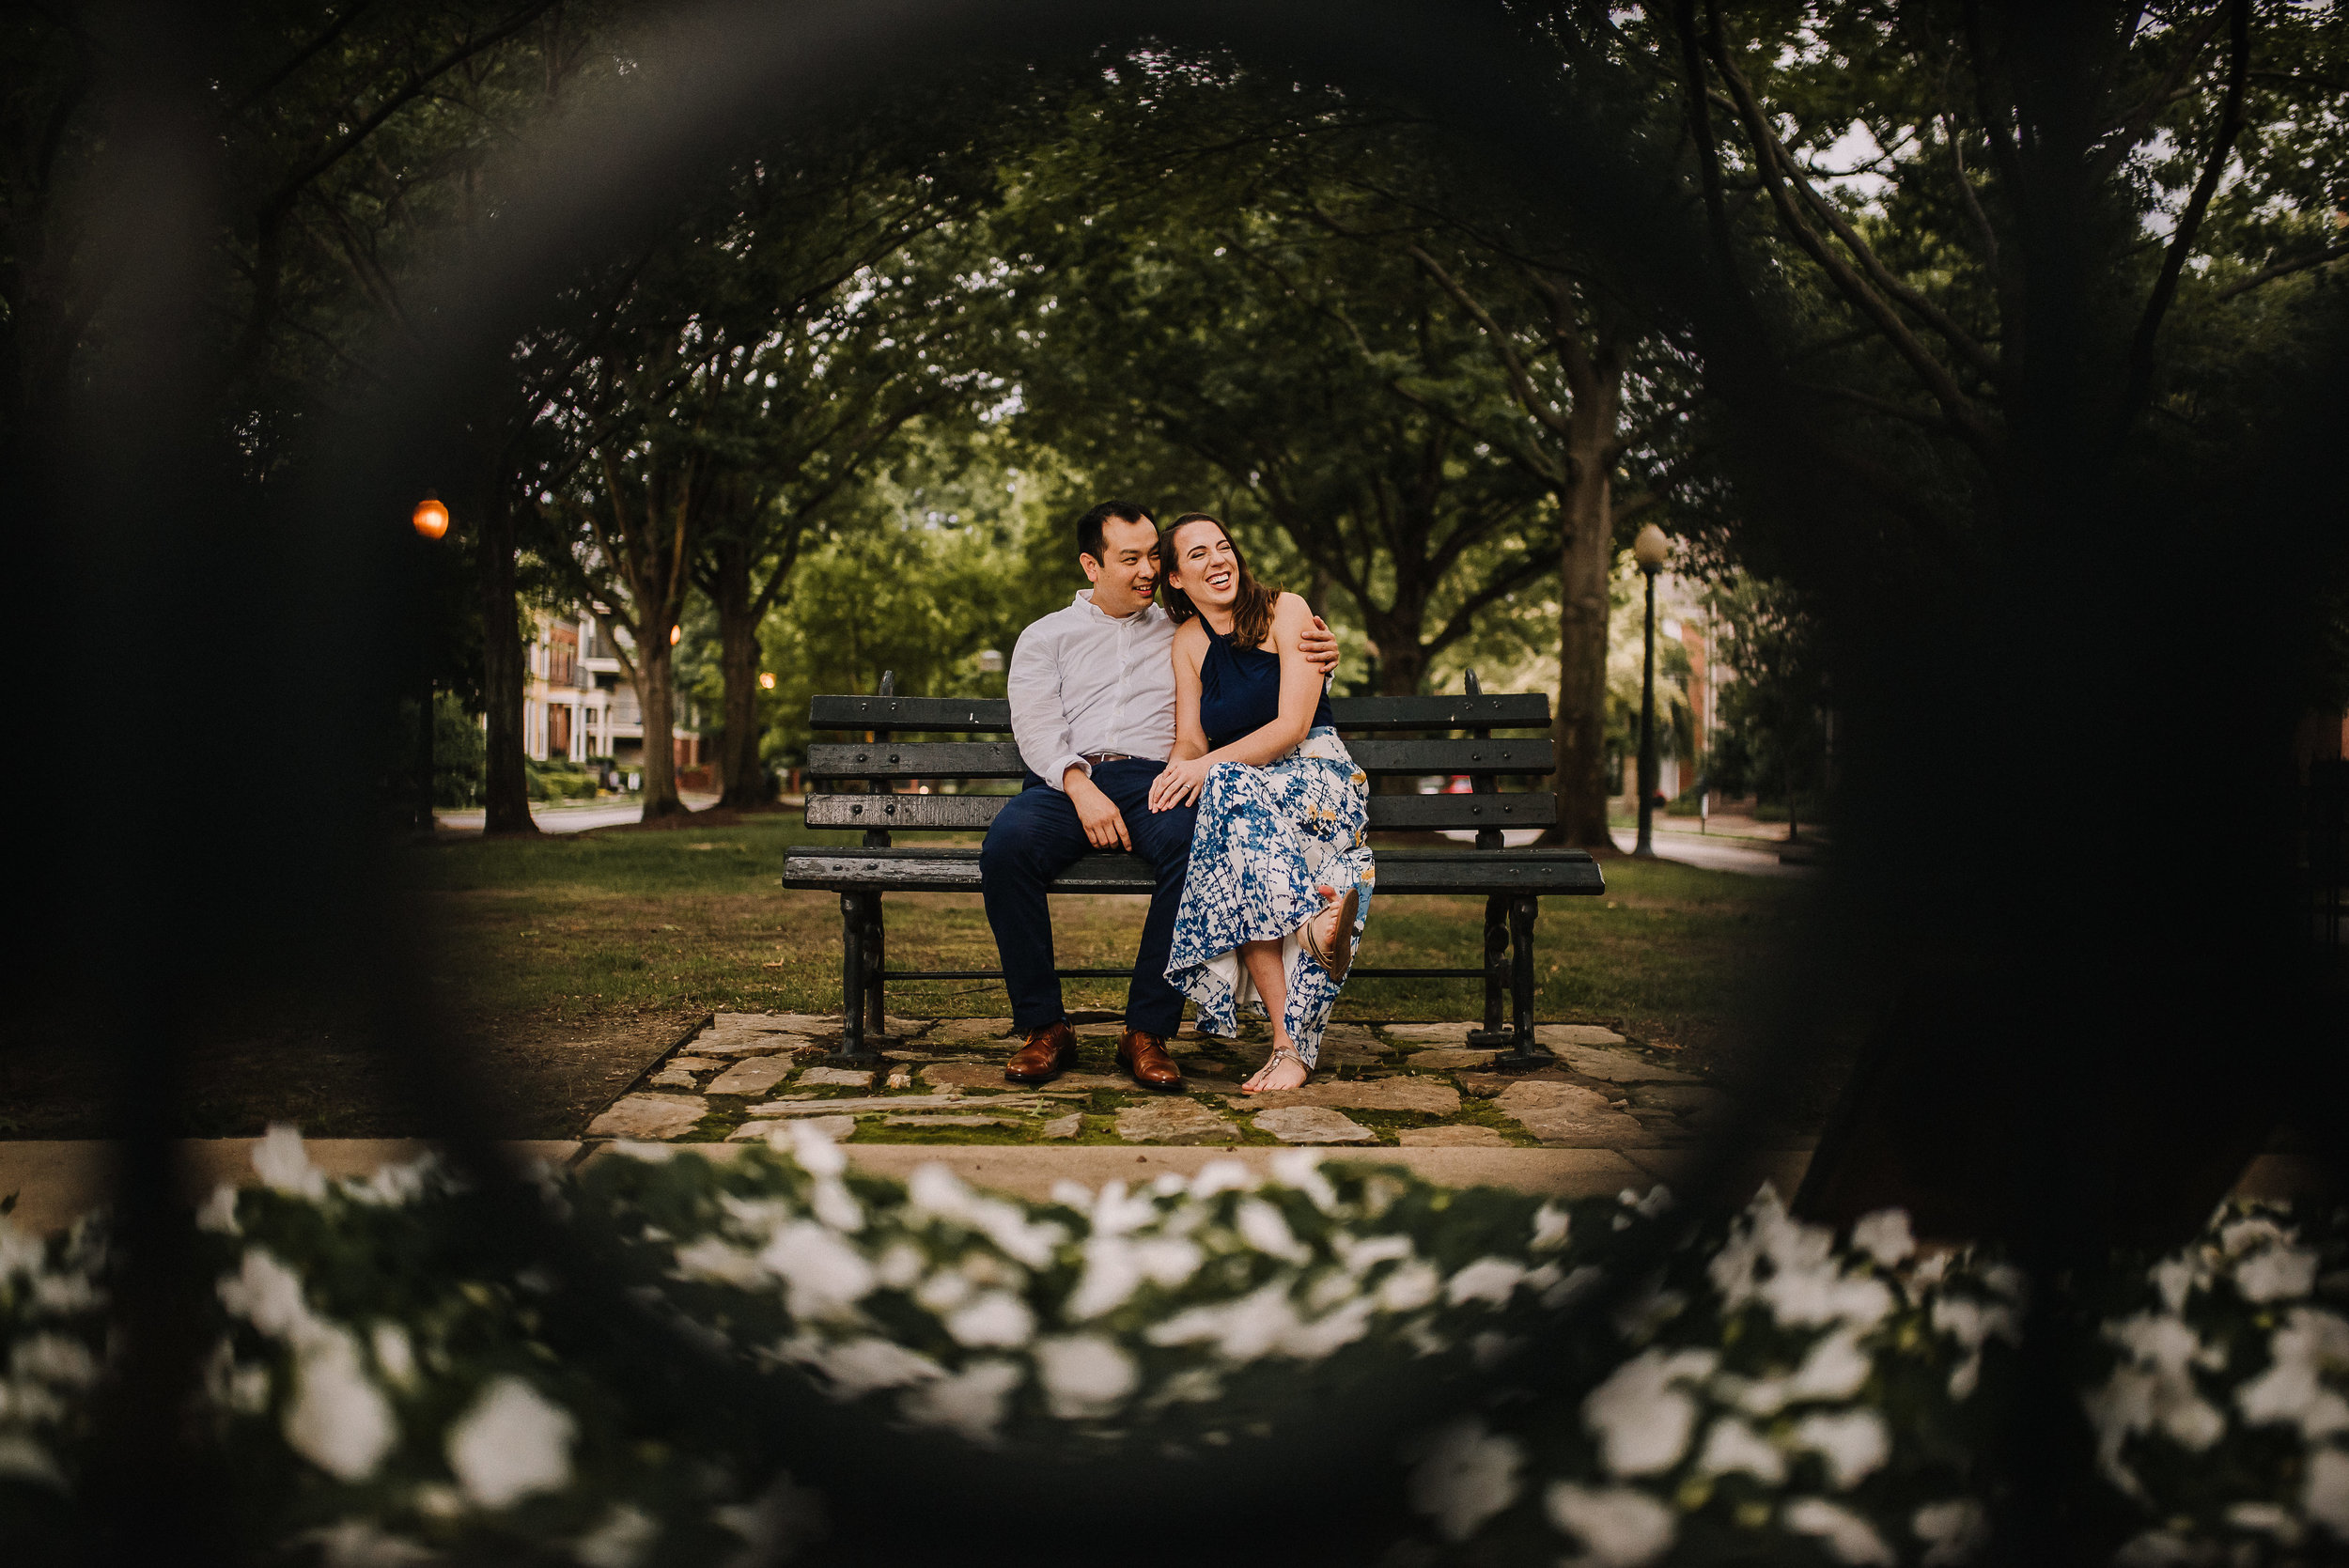 Jenny&Patrick_Downtown Memphis Engagement_Ashley Benham Photography-23.jpg